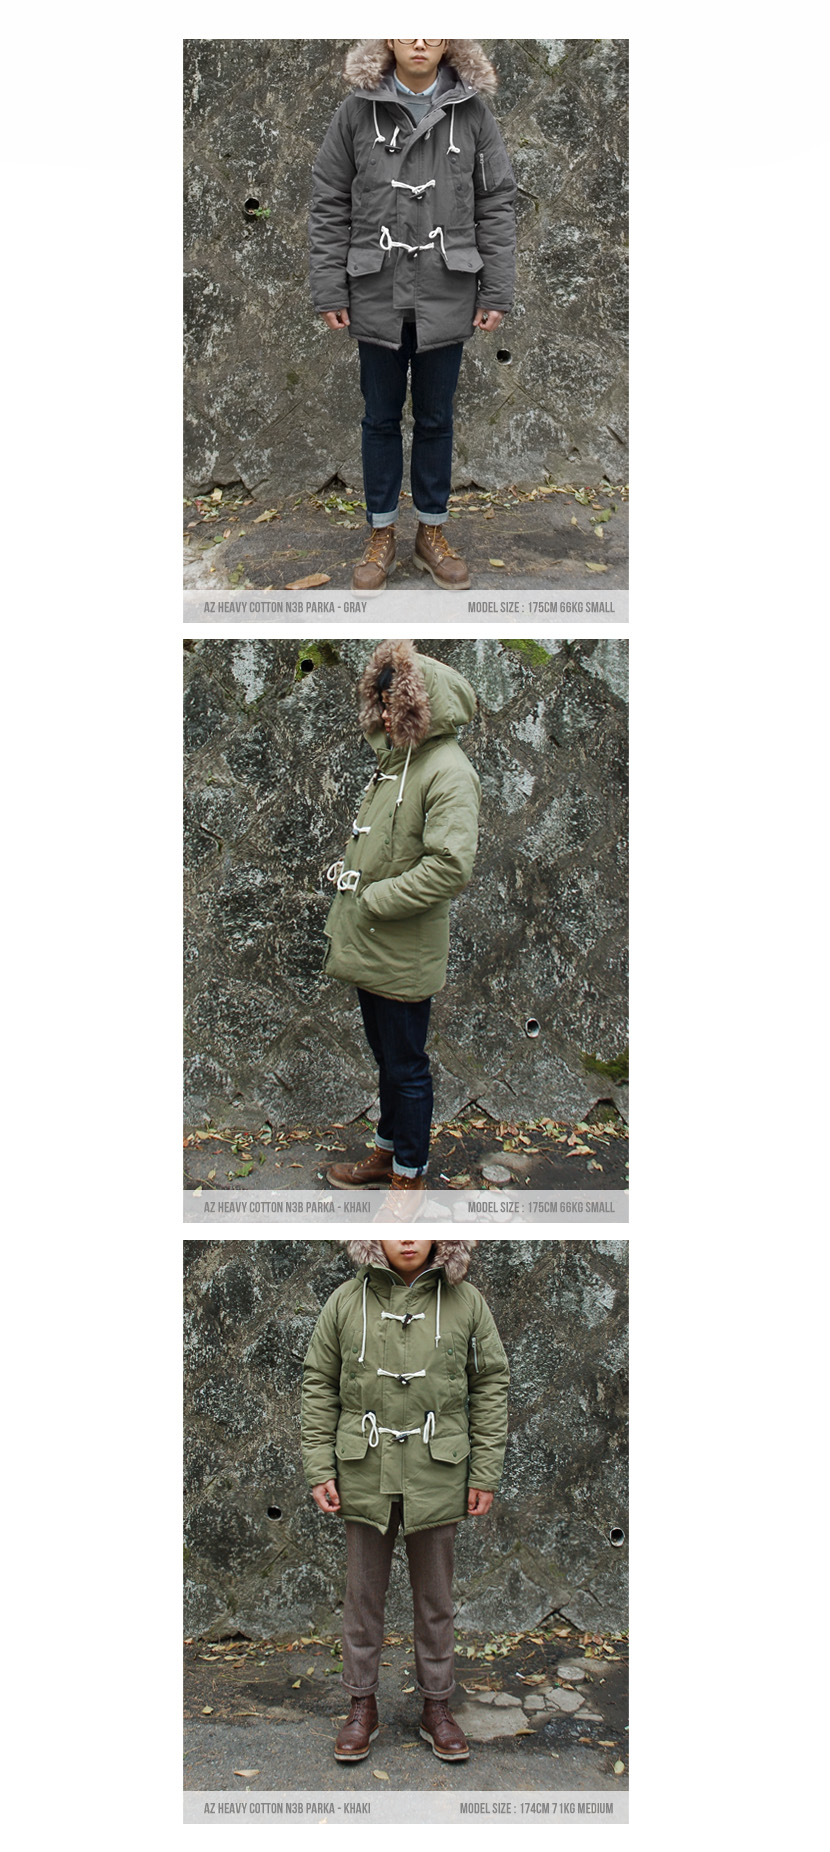 AZ-Heavy-Cotton-N3B-Parka-model.jpg